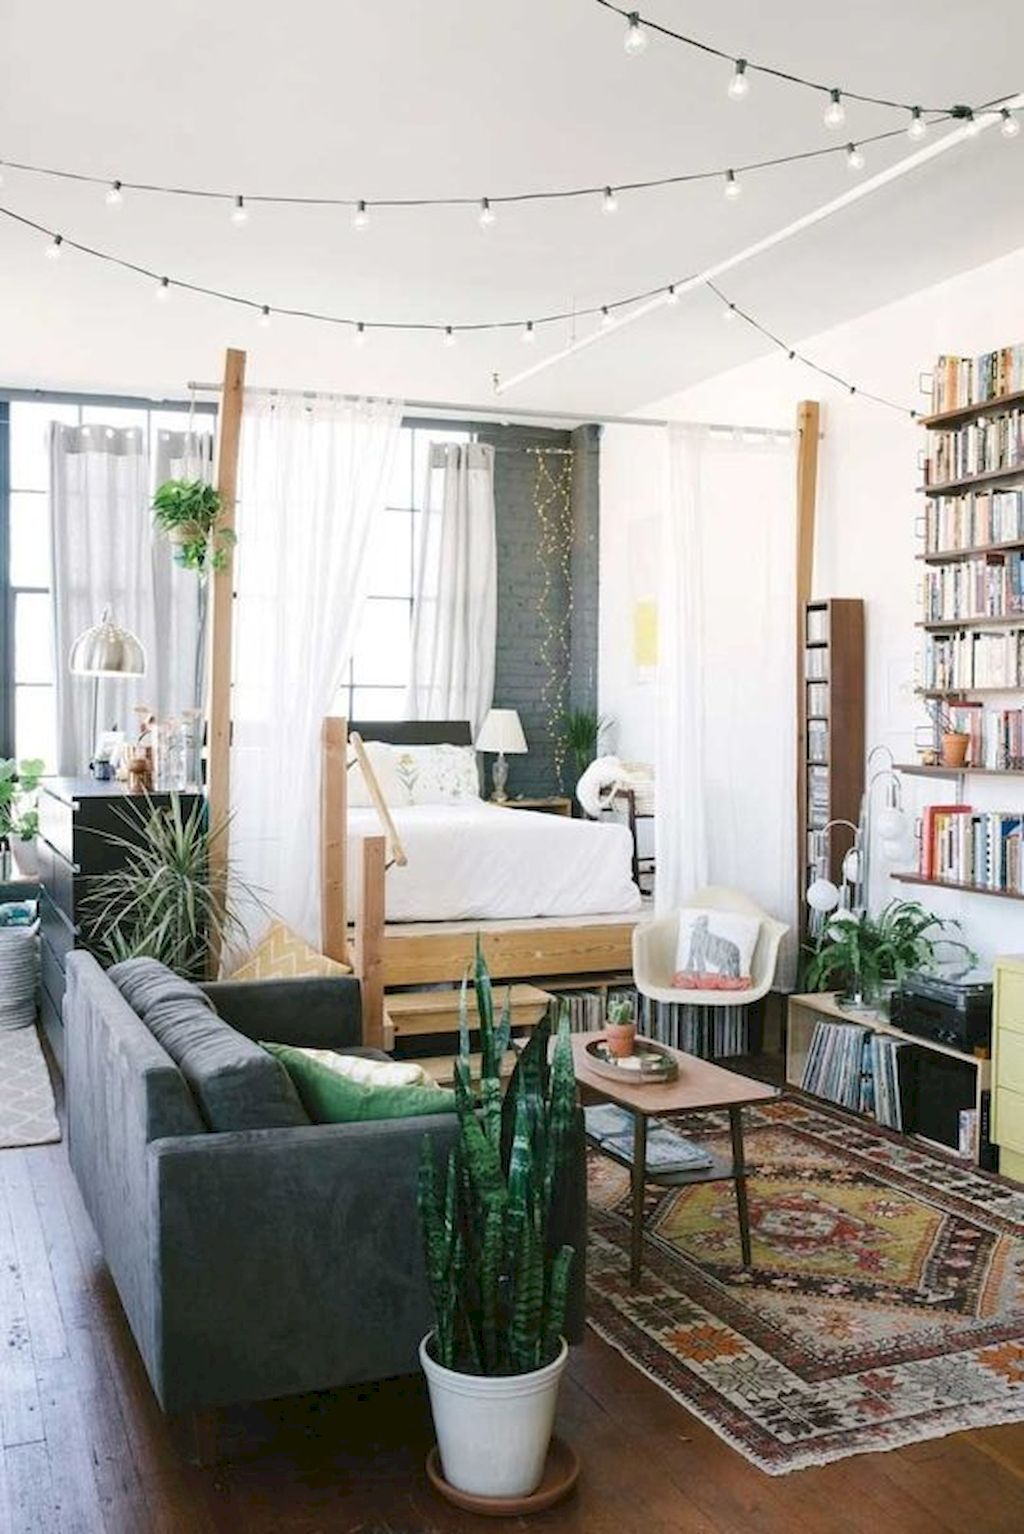 88 Beautiful Apartment Living Room Decor Ideas With Boho Style ...